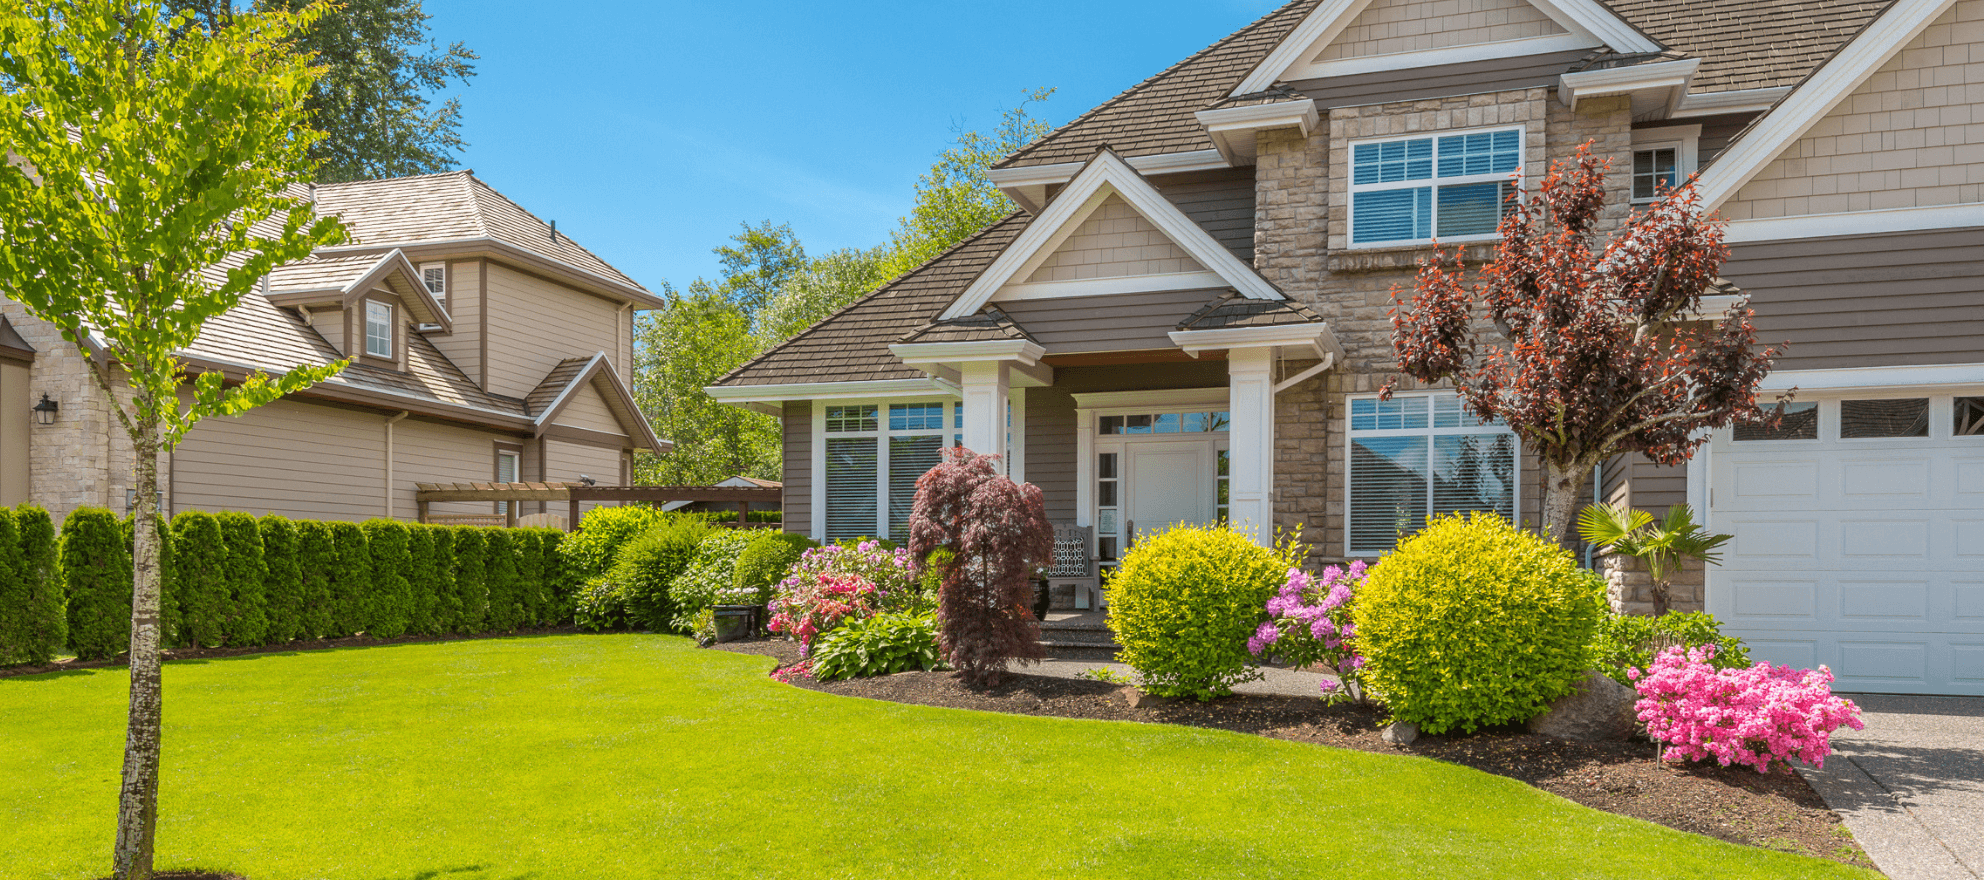 curb-appeal-landscaping-photo.png